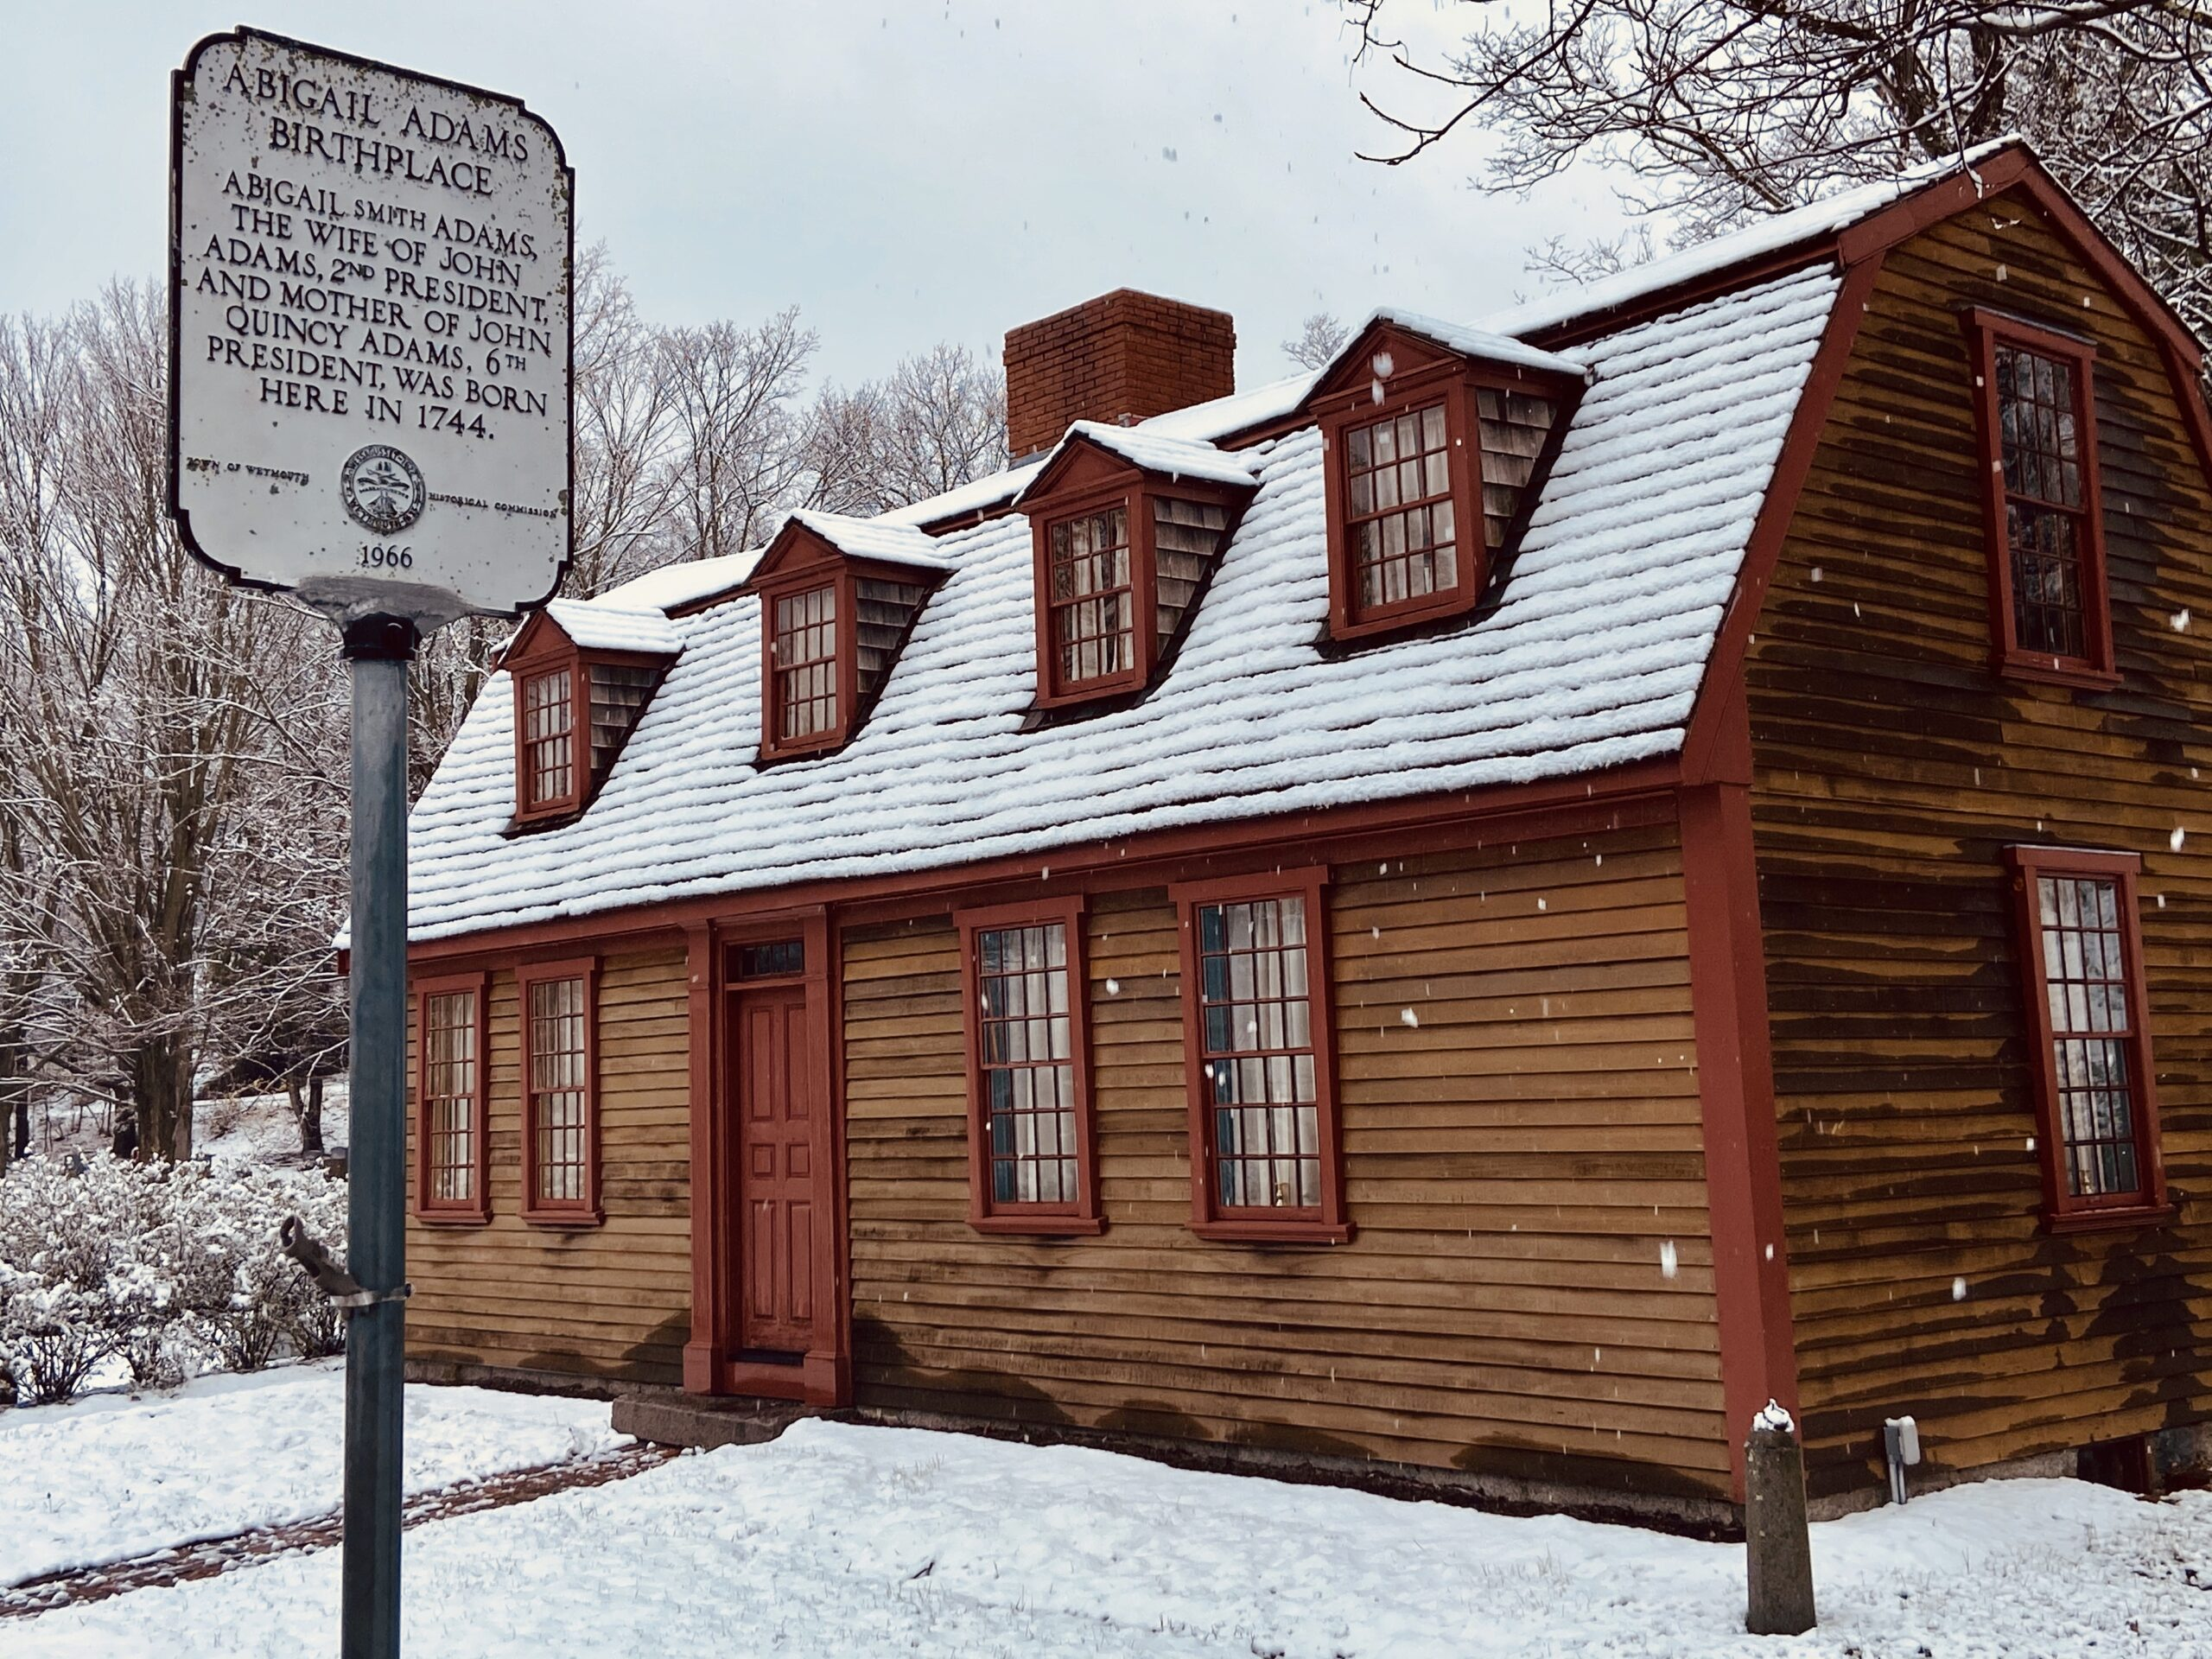 A Patriots Day tour through the life of the amazing Abigail Adams